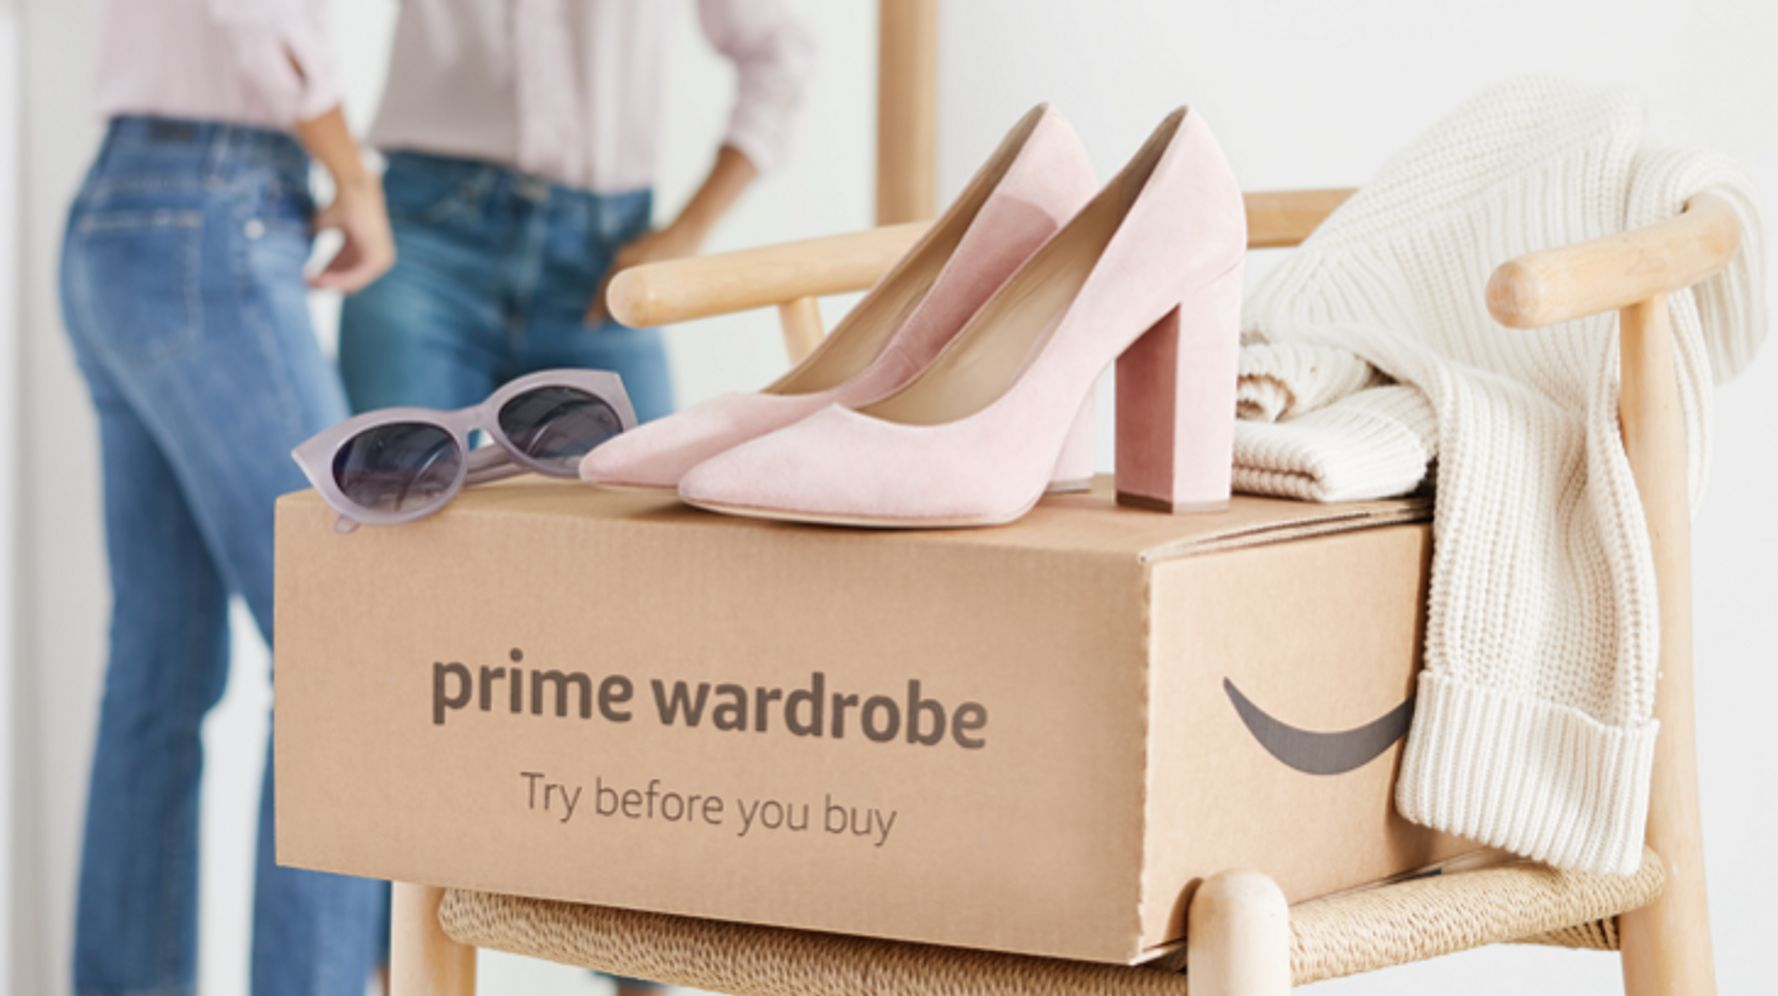 da5785bed4bbb Amazon Prime Wardrobe Is Now Available To All Customers | HuffPost Life